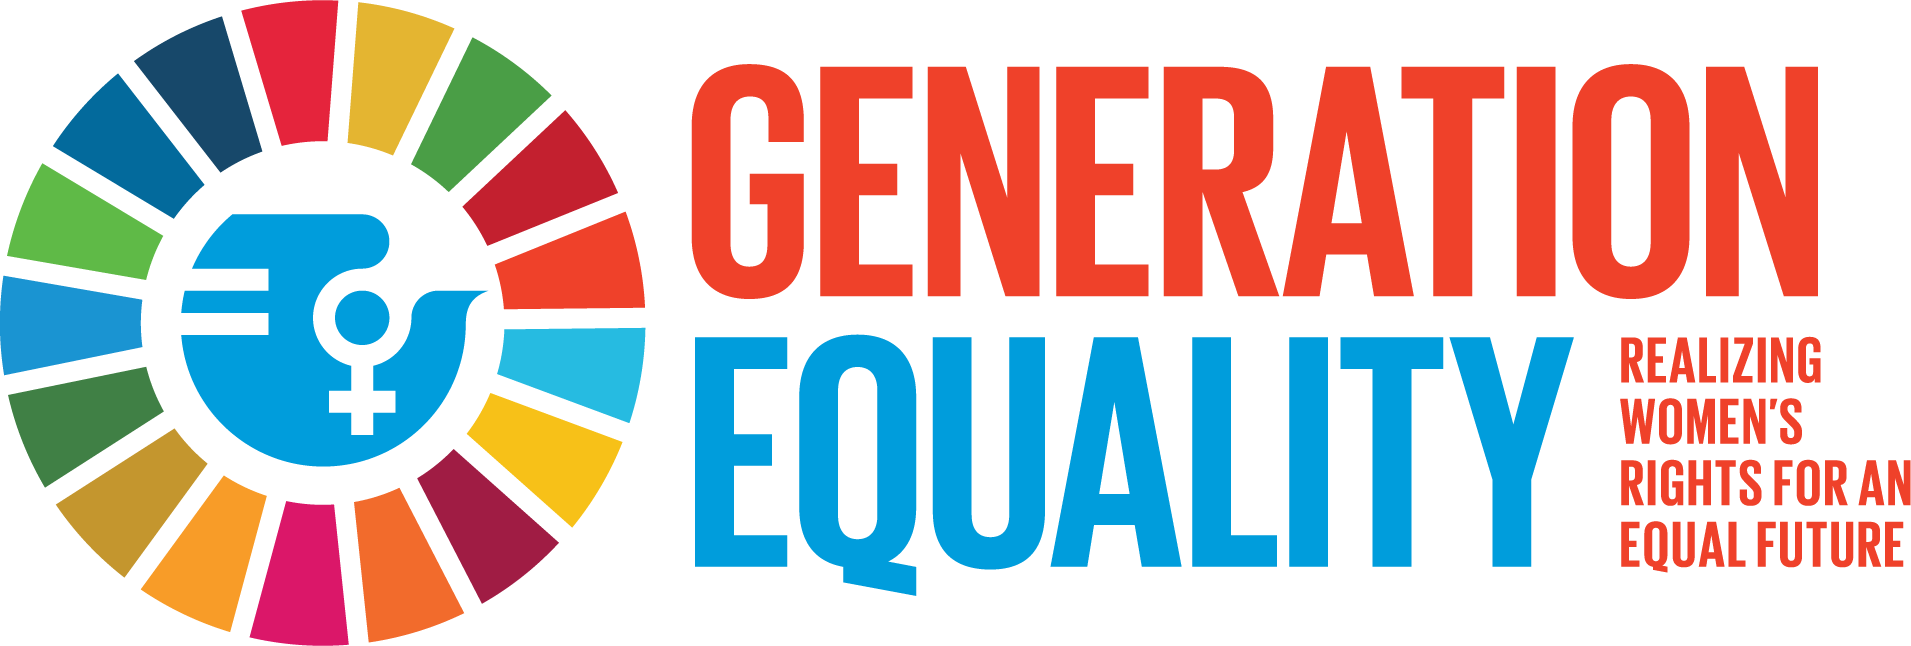 GenerationEquality-En-RGB.png